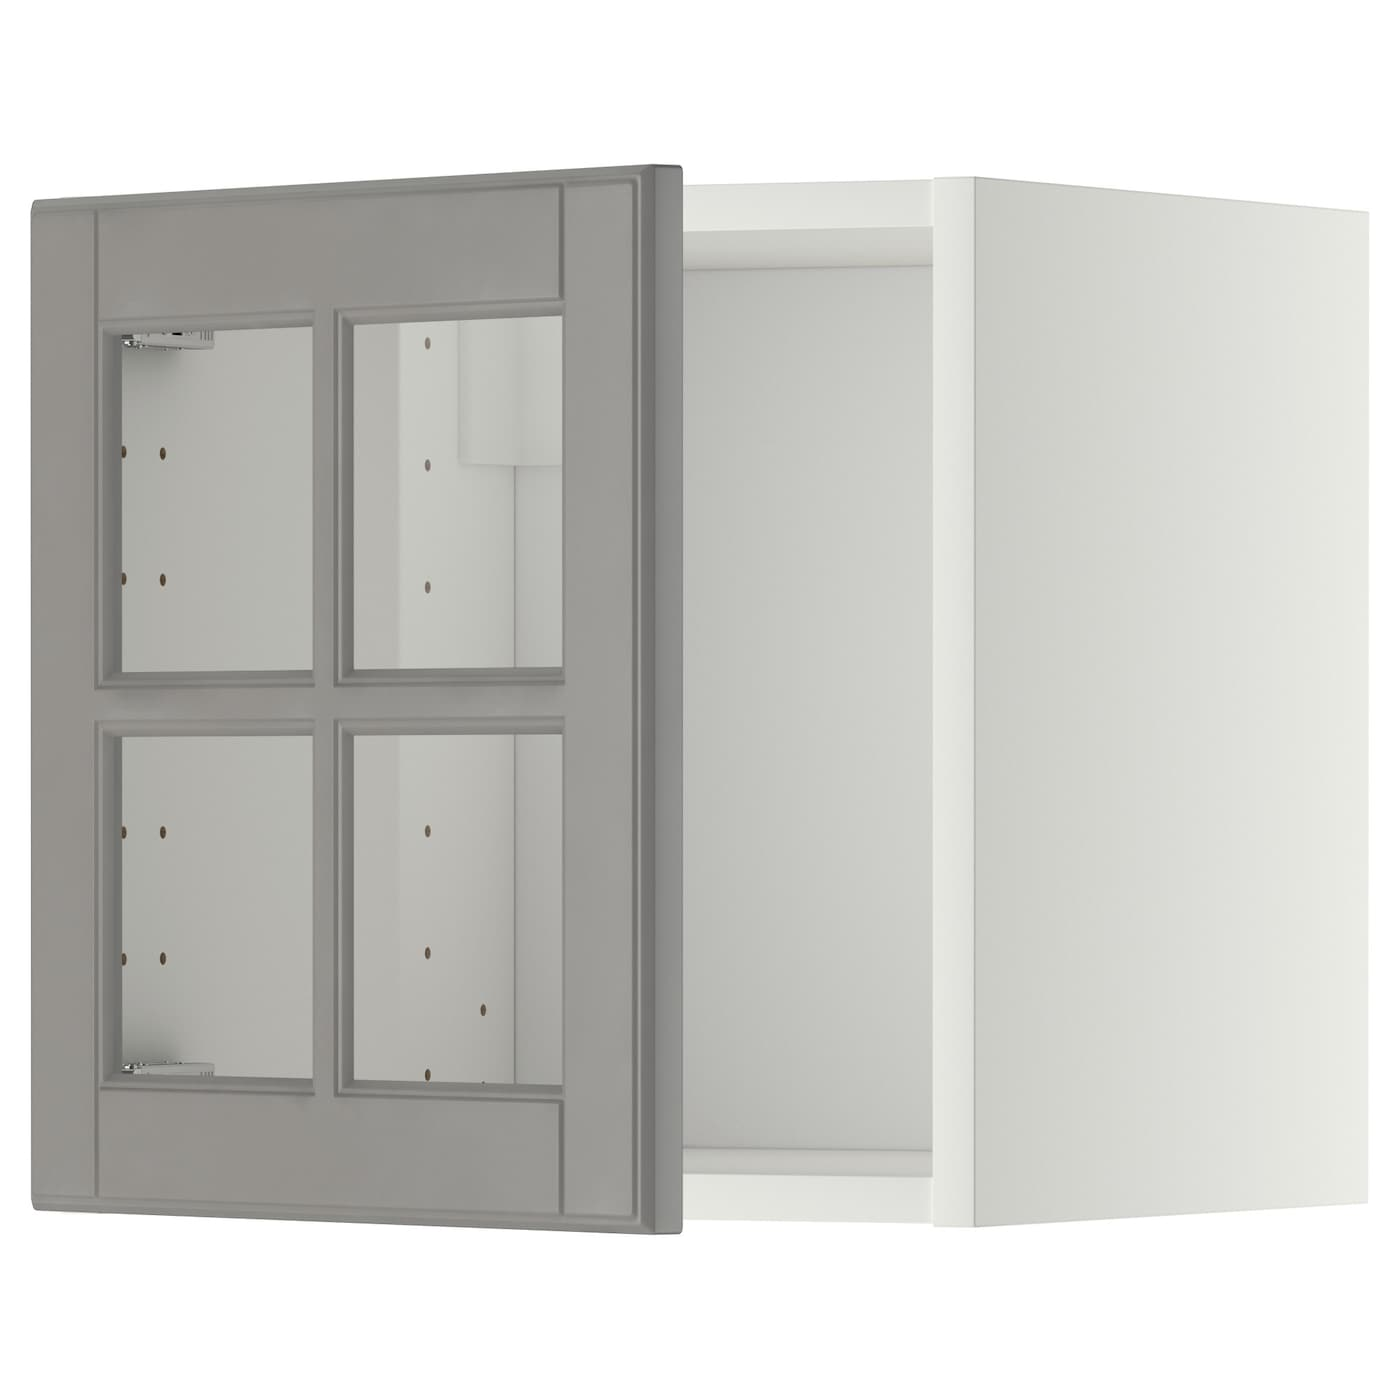 Metod wall cabinet with glass door white bodbyn grey 40x40 - Element de cuisine leroy merlin ...